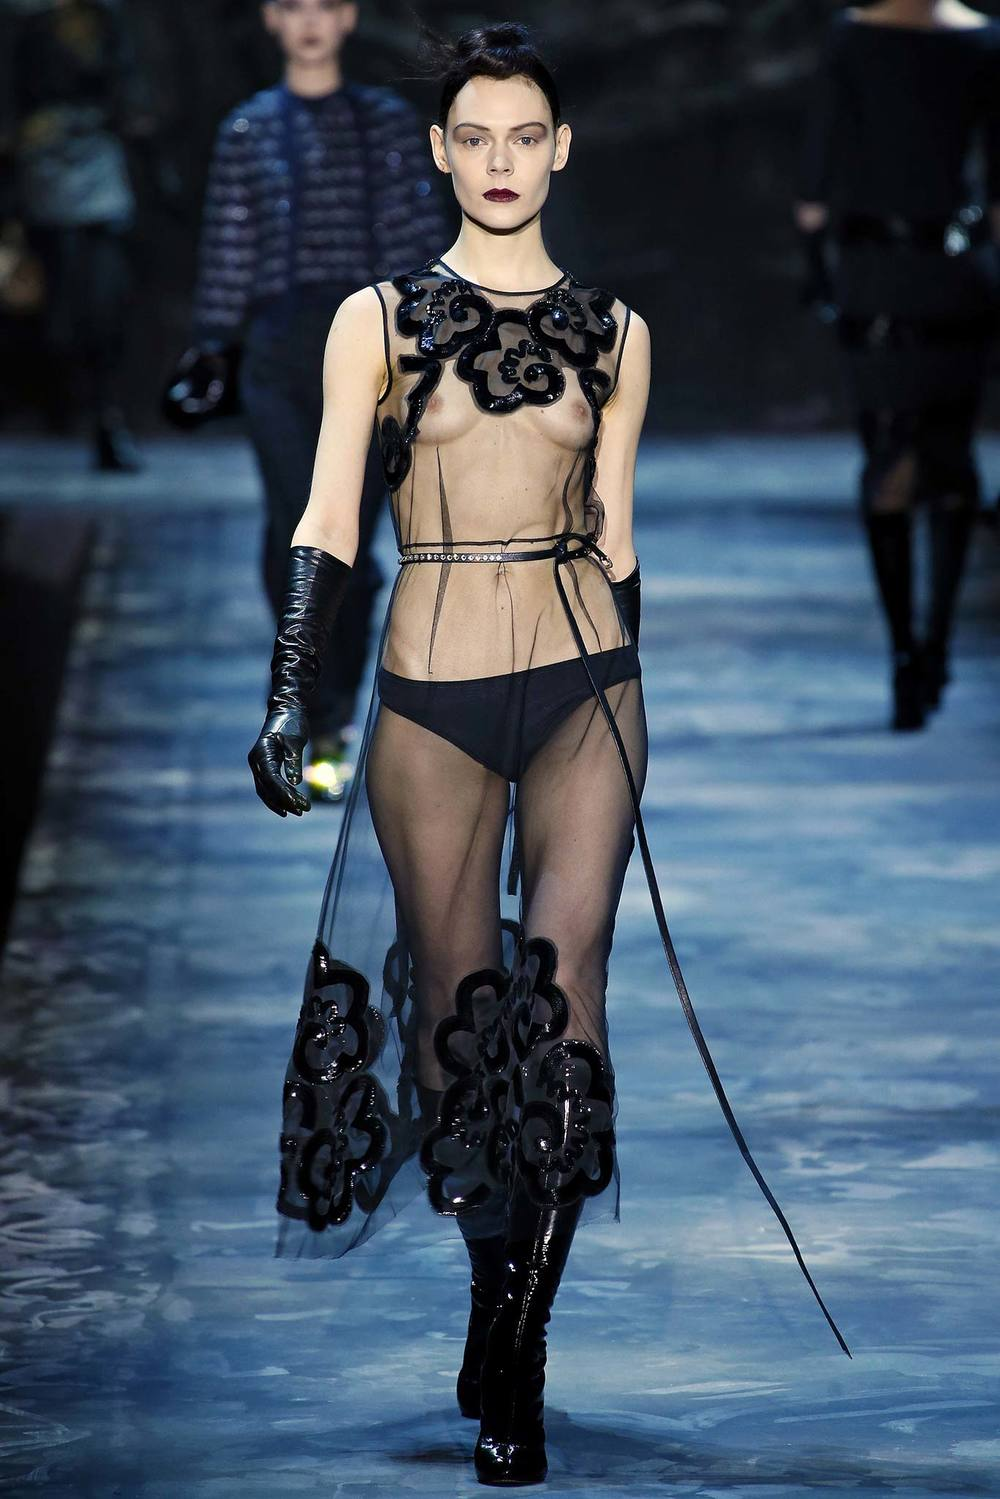 Featuring elbow-length black gloves, sheer clothing, 'leash-like' belt, patent boots.